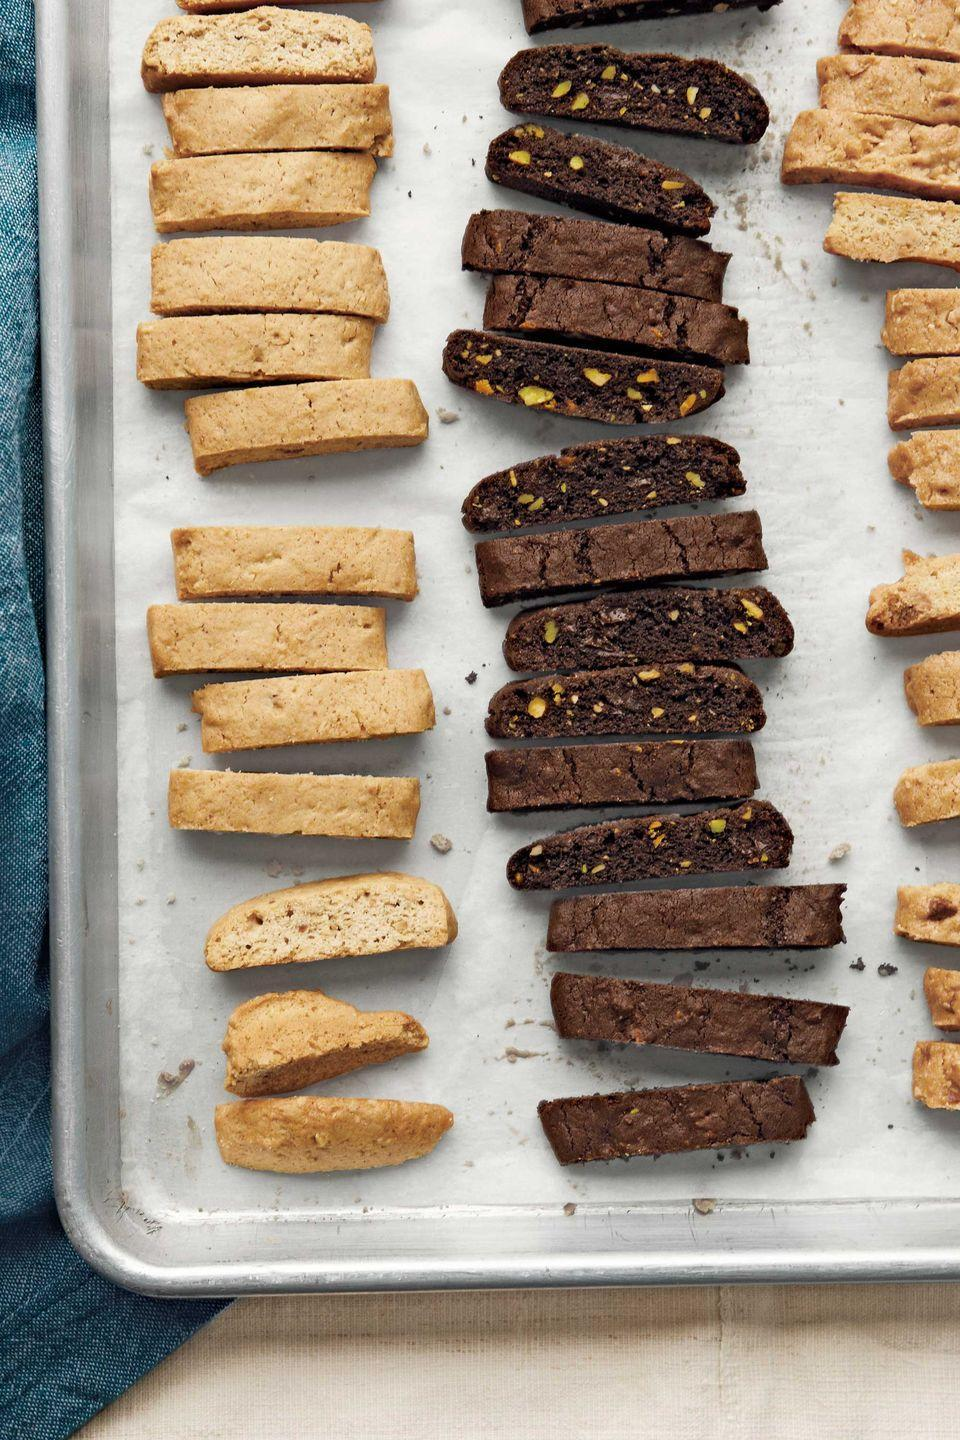 """<p>For a professional finish, sprinkle on a little fleur de sel before popping these lemon-olive oil and chocolate-pistachio biscotti in the oven. </p><p><strong>Recipes: </strong><a href=""""https://www.countryliving.com/recipefinder/lemon-olive-oil-biscotti-recipe-clx1211?click=recipe_sr"""" rel=""""nofollow noopener"""" target=""""_blank"""" data-ylk=""""slk:Lemon-Olive Oil Biscotti"""" class=""""link rapid-noclick-resp""""><strong>Lemon-Olive Oil Biscotti</strong></a></p><p><a href=""""https://www.countryliving.com/food-drinks/recipes/a3744/chocolate-pistachio-biscotti-recipe-clx1211/?click=recipe_sr"""" rel=""""nofollow noopener"""" target=""""_blank"""" data-ylk=""""slk:Chocolate-Pistachio Biscotti"""" class=""""link rapid-noclick-resp""""><strong>Chocolate-Pistachio Biscotti</strong></a></p>"""